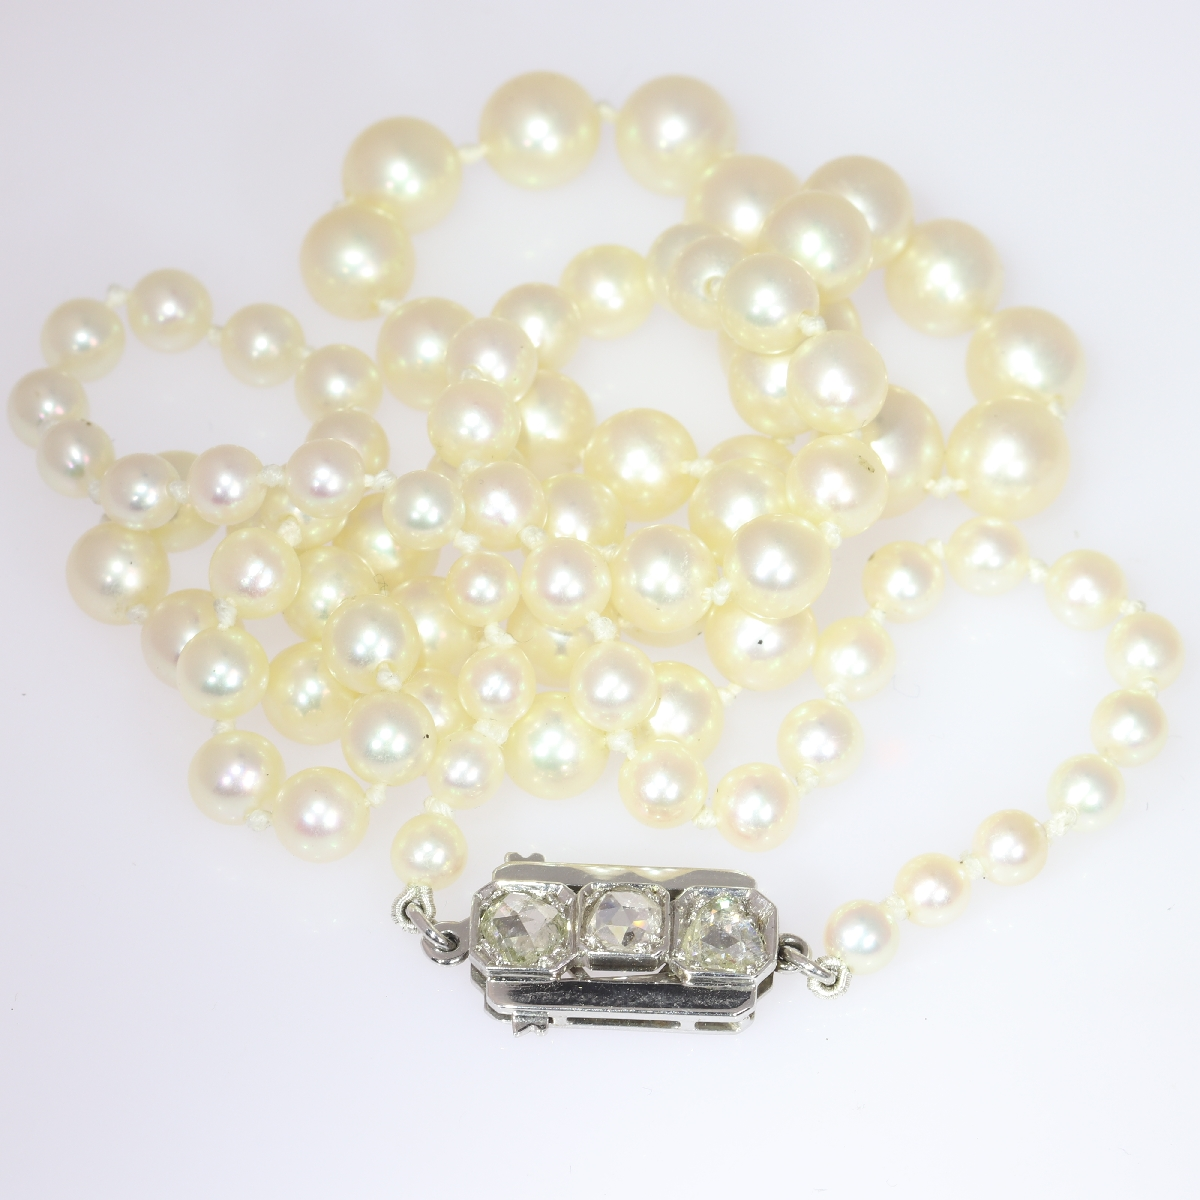 Estate pearl necklace with white gold closure set with rose cut diamonds